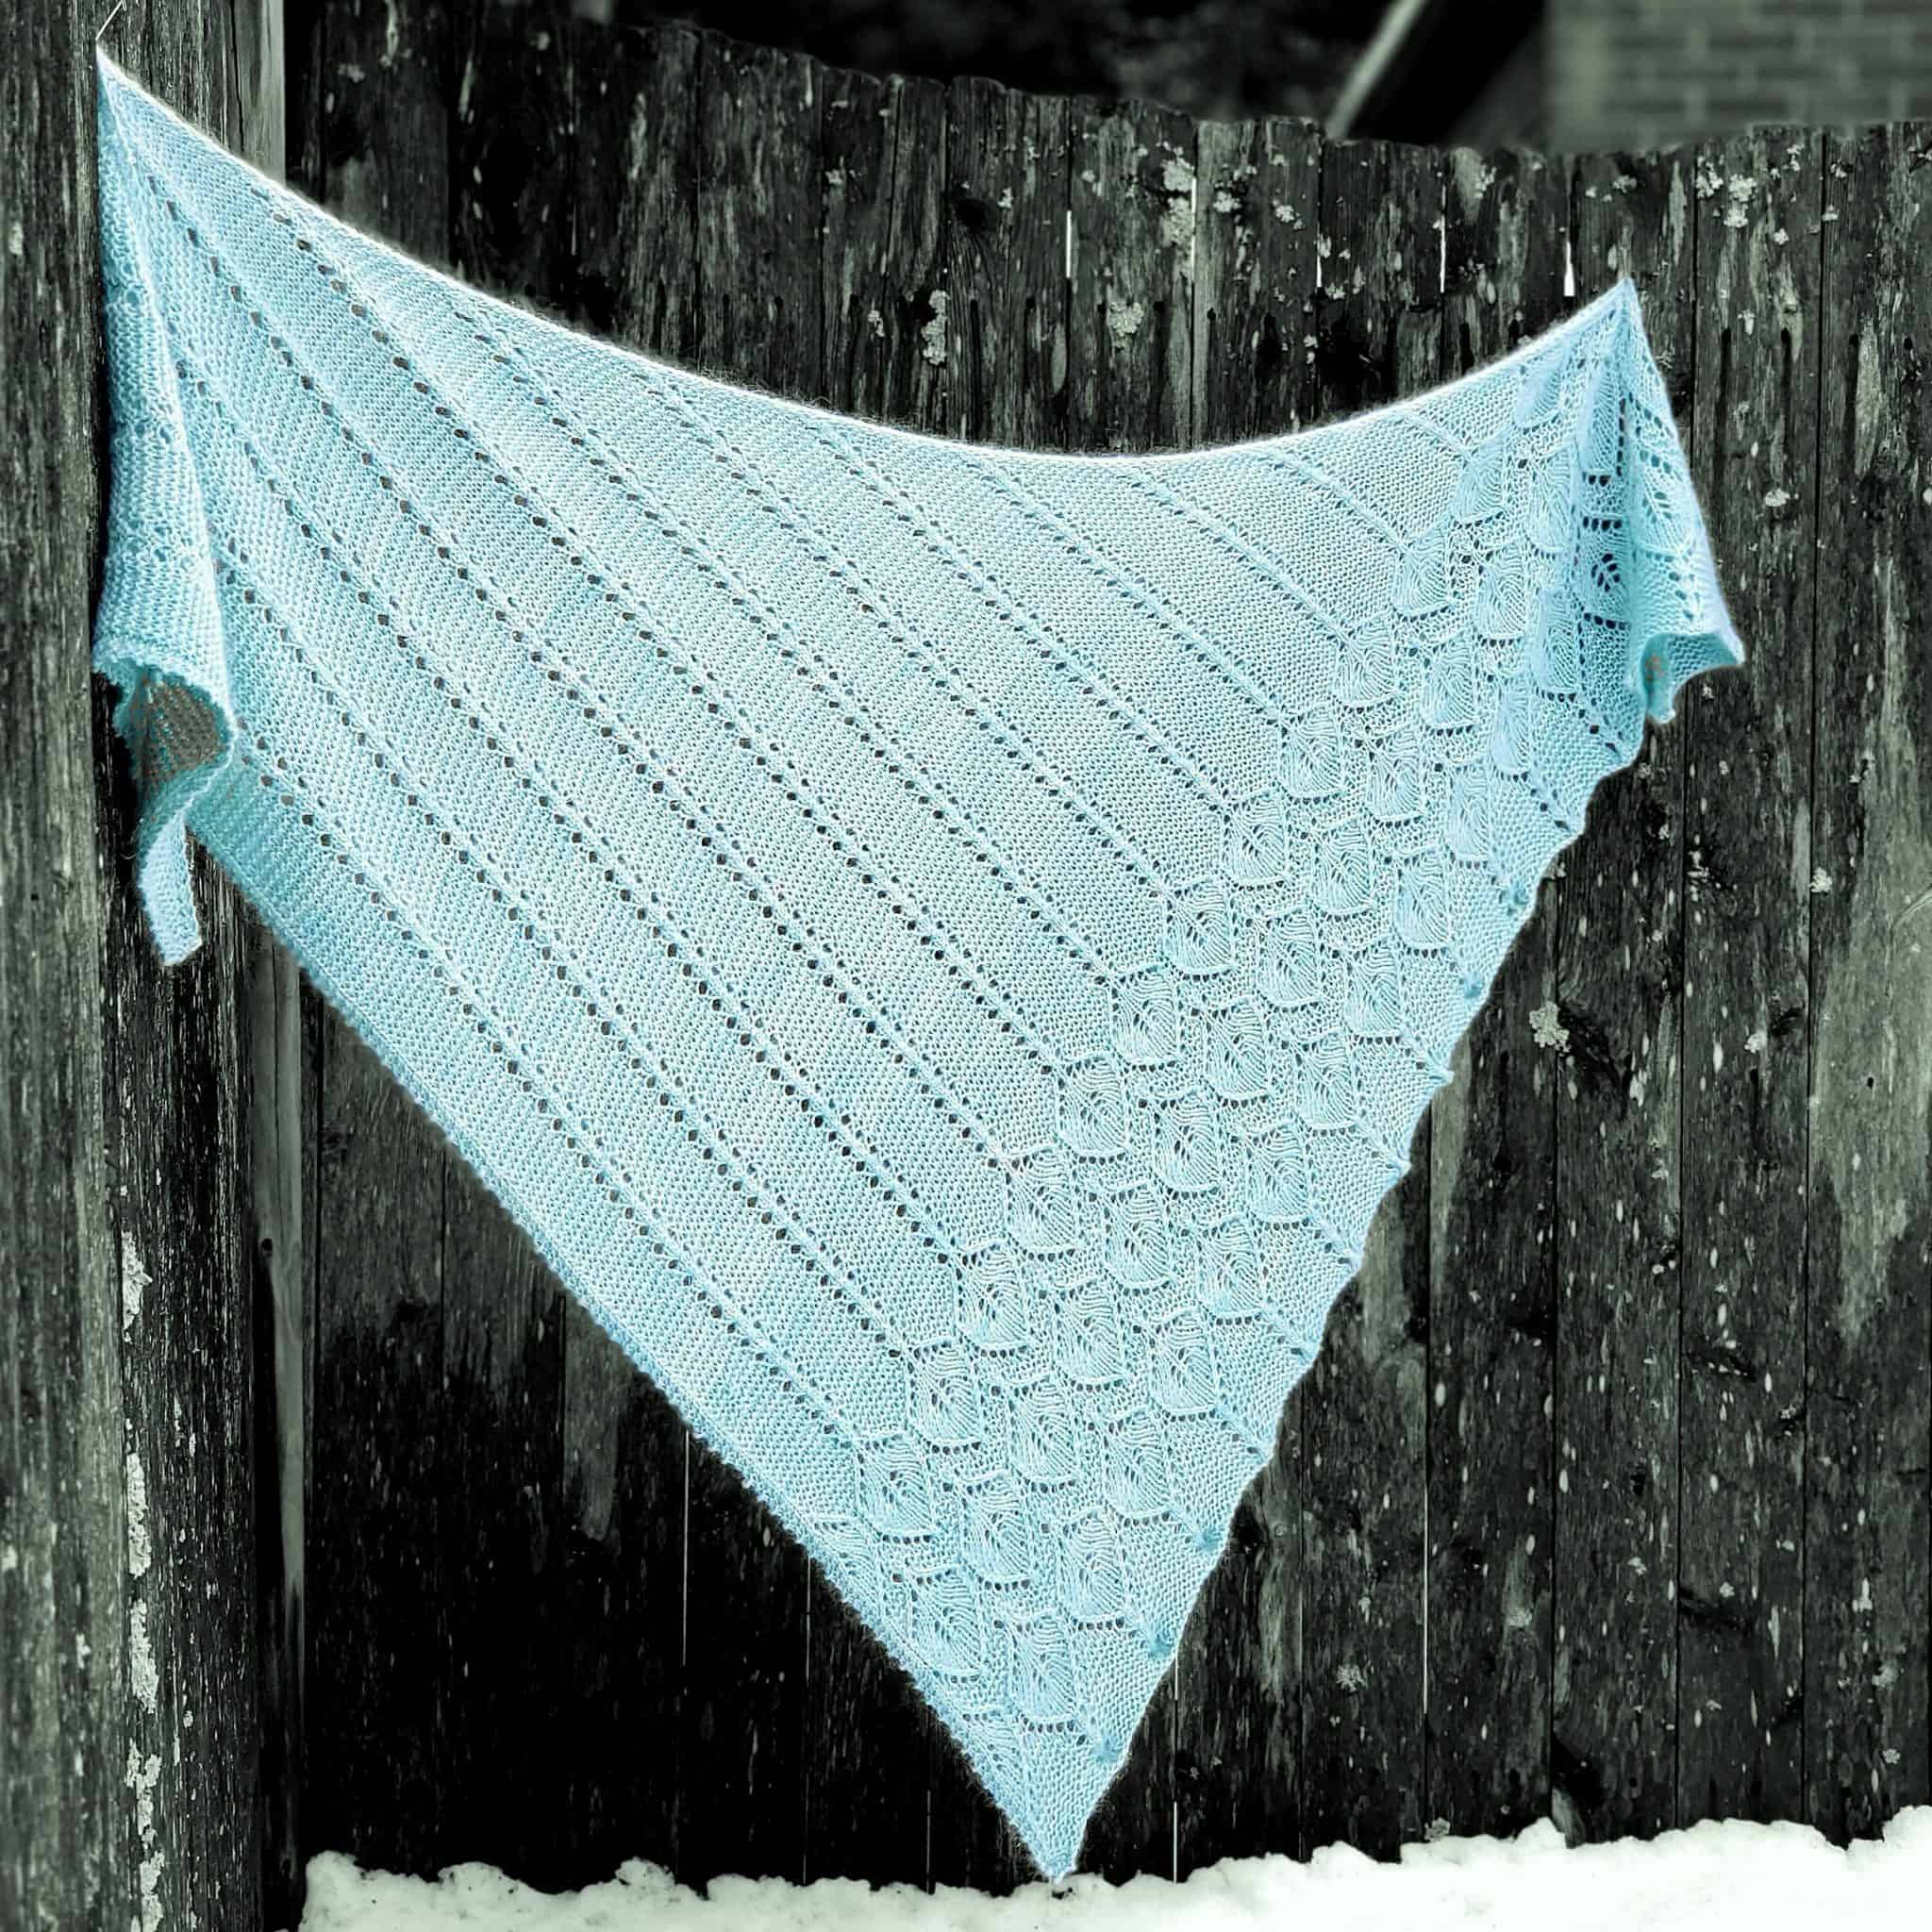 An aqua lacy triangle shawl.